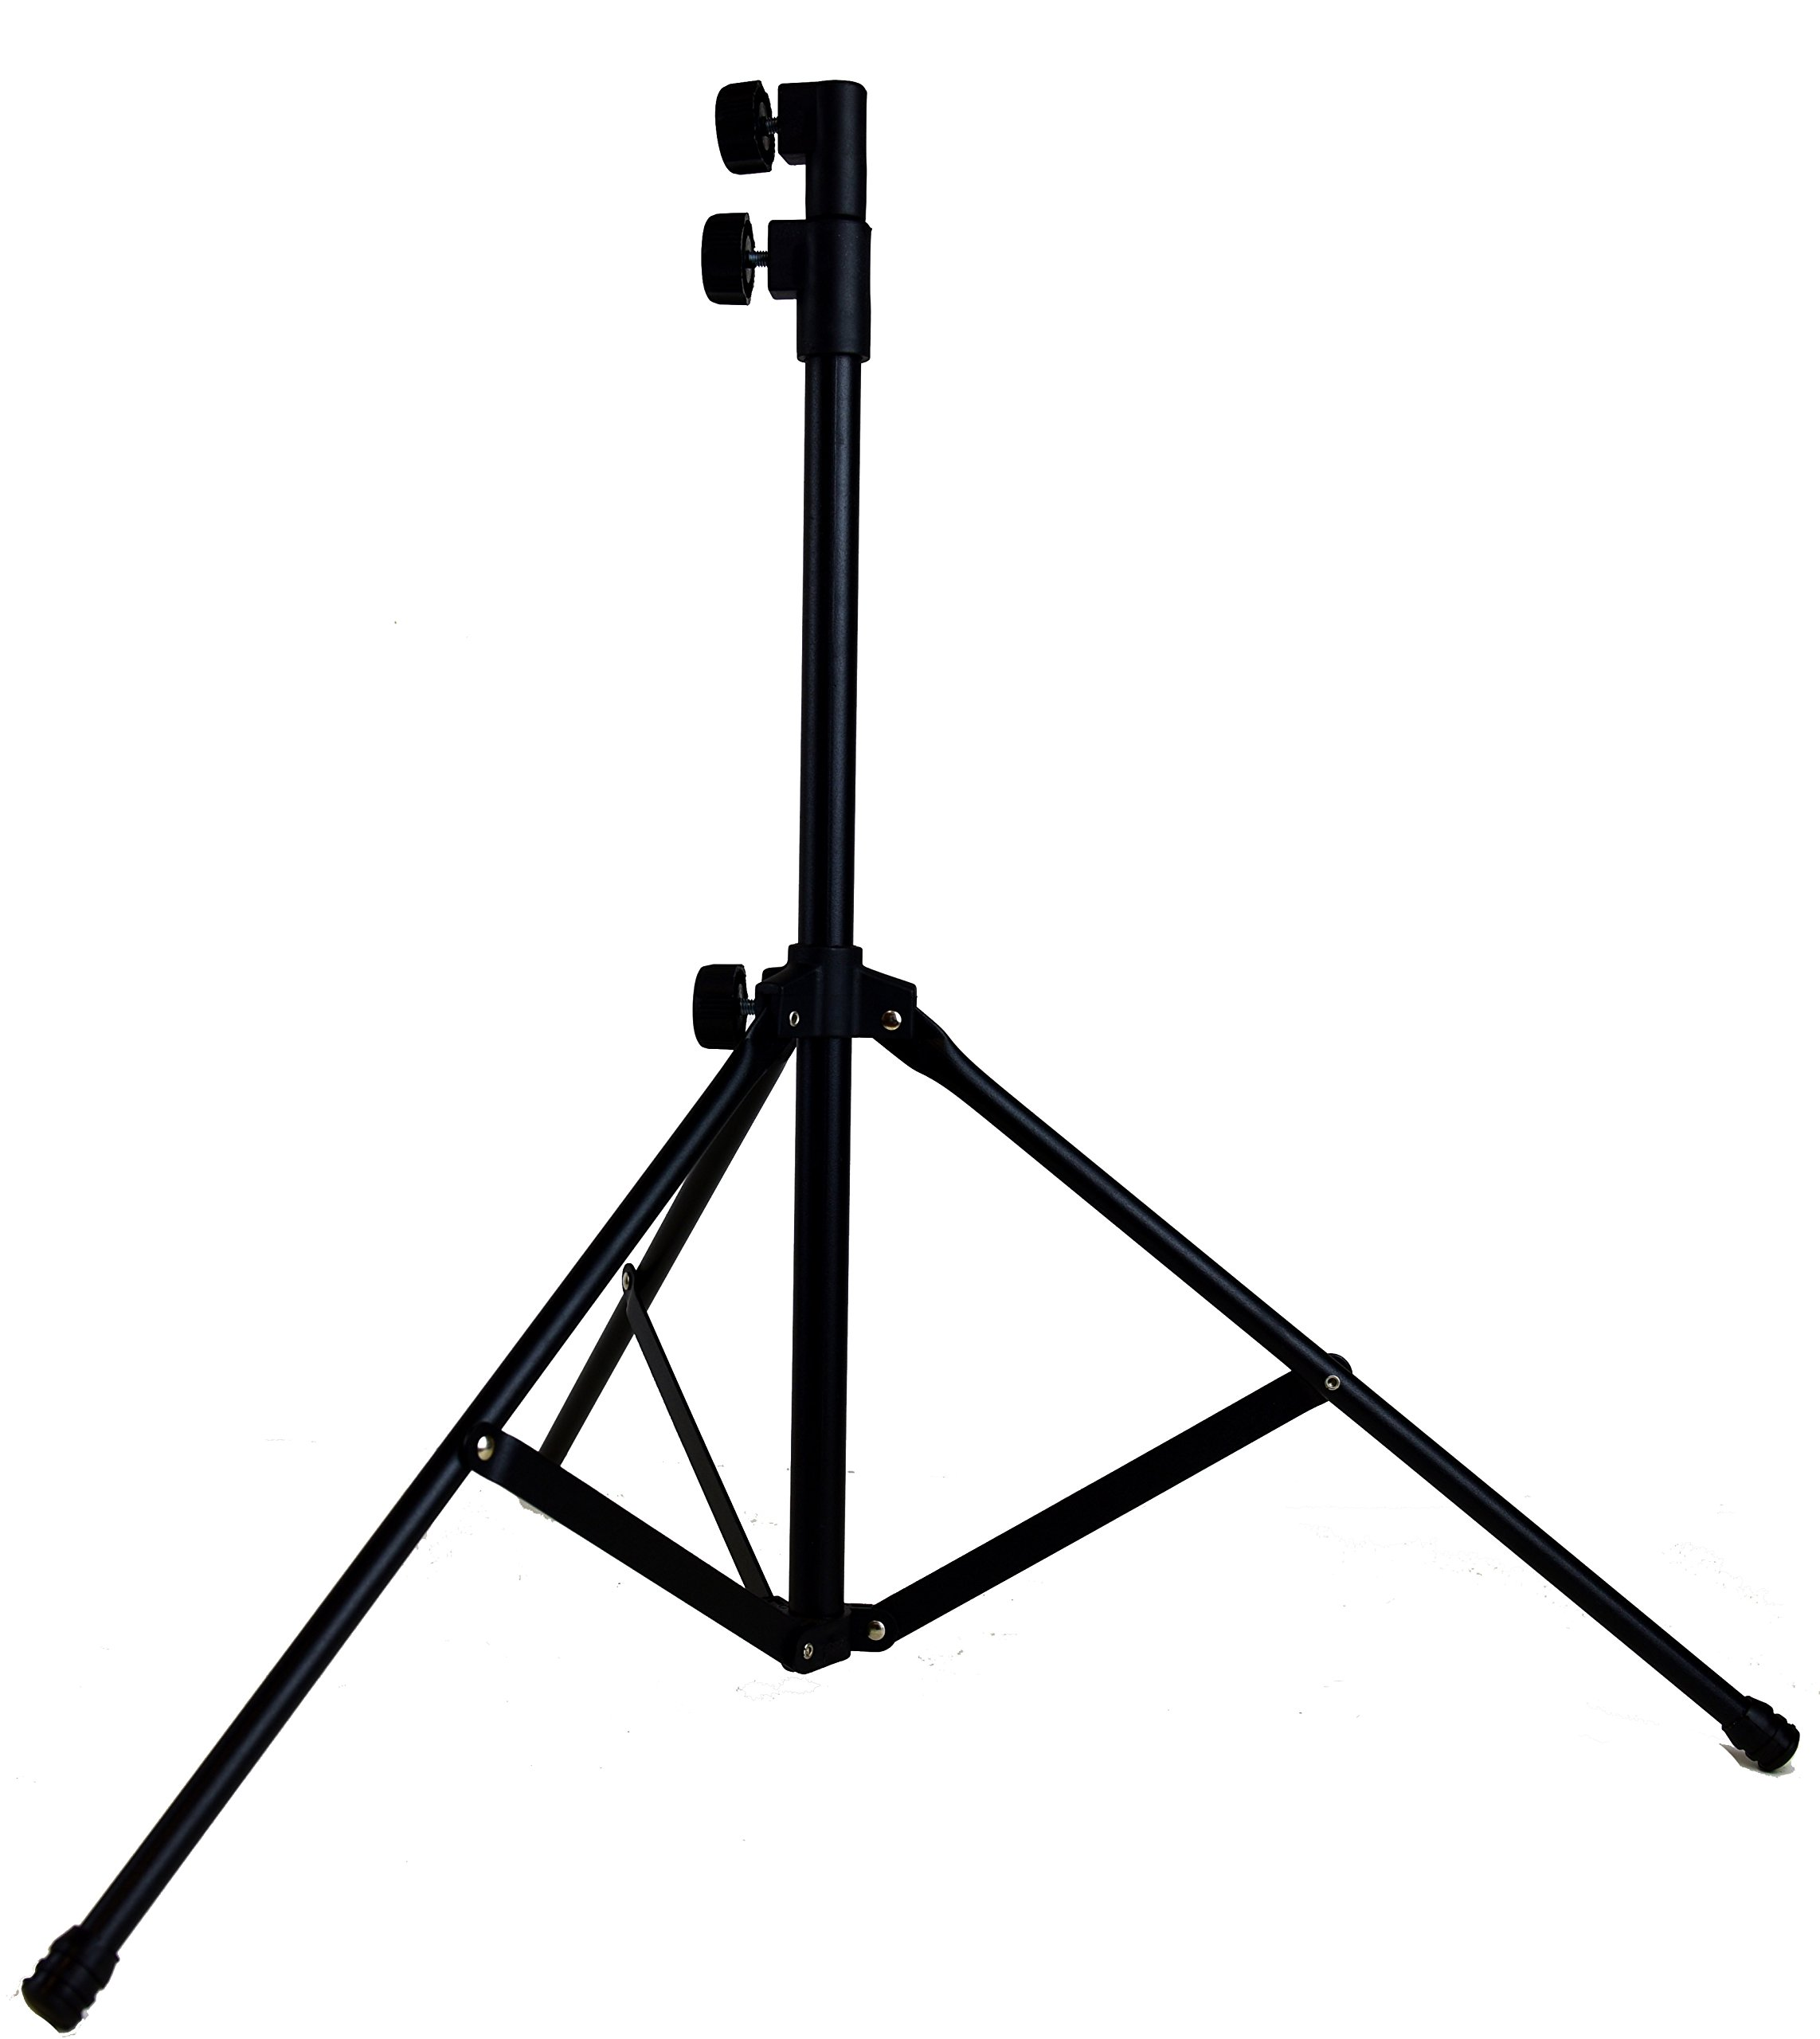 Hisonic Signature Series 7121 Two Section Folding Music Stand with Carrying Bag by Signature Music Instruments (Image #5)